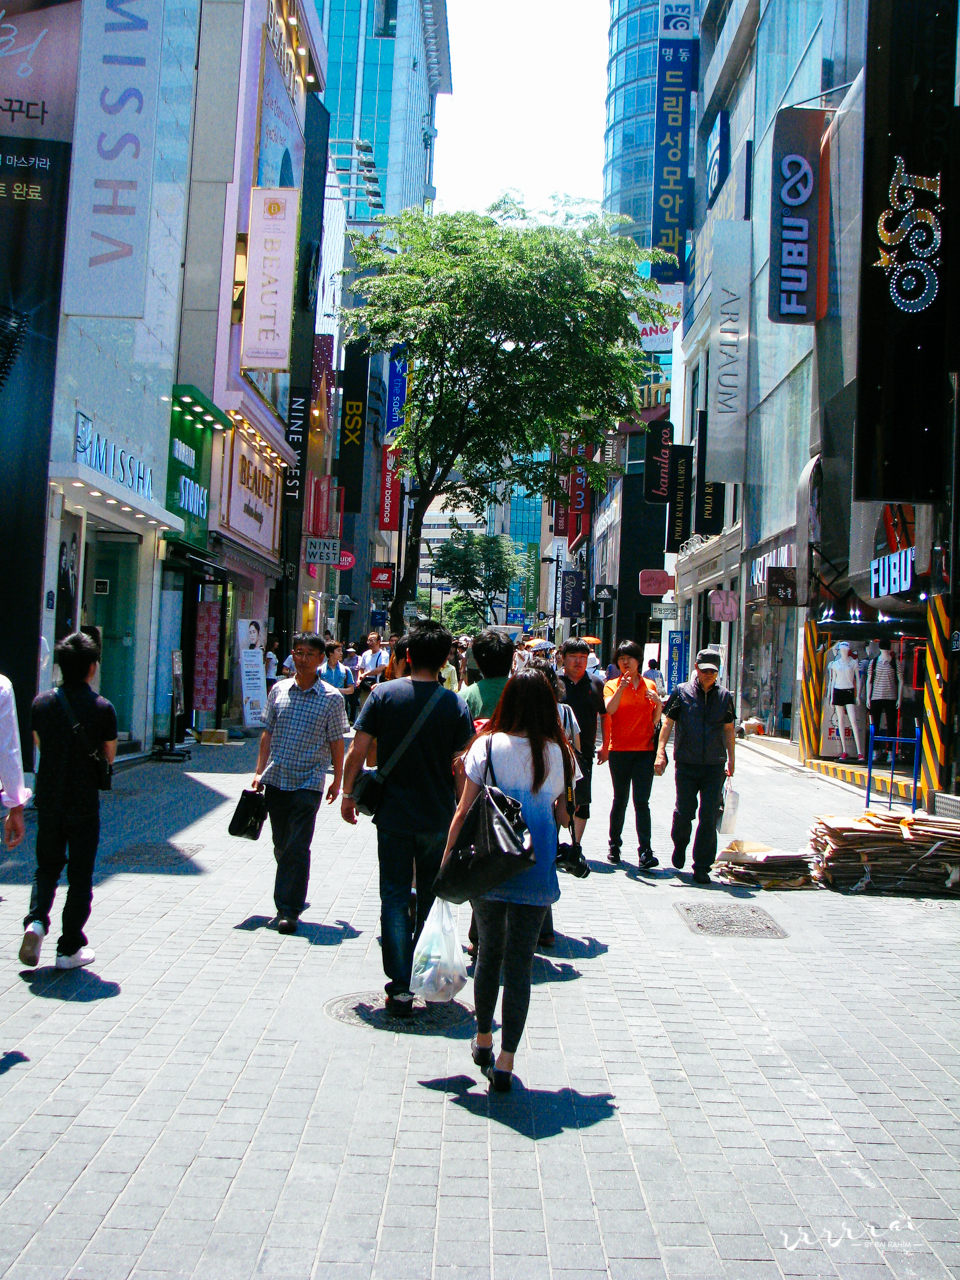 Shopping in Myeongdong (명동)